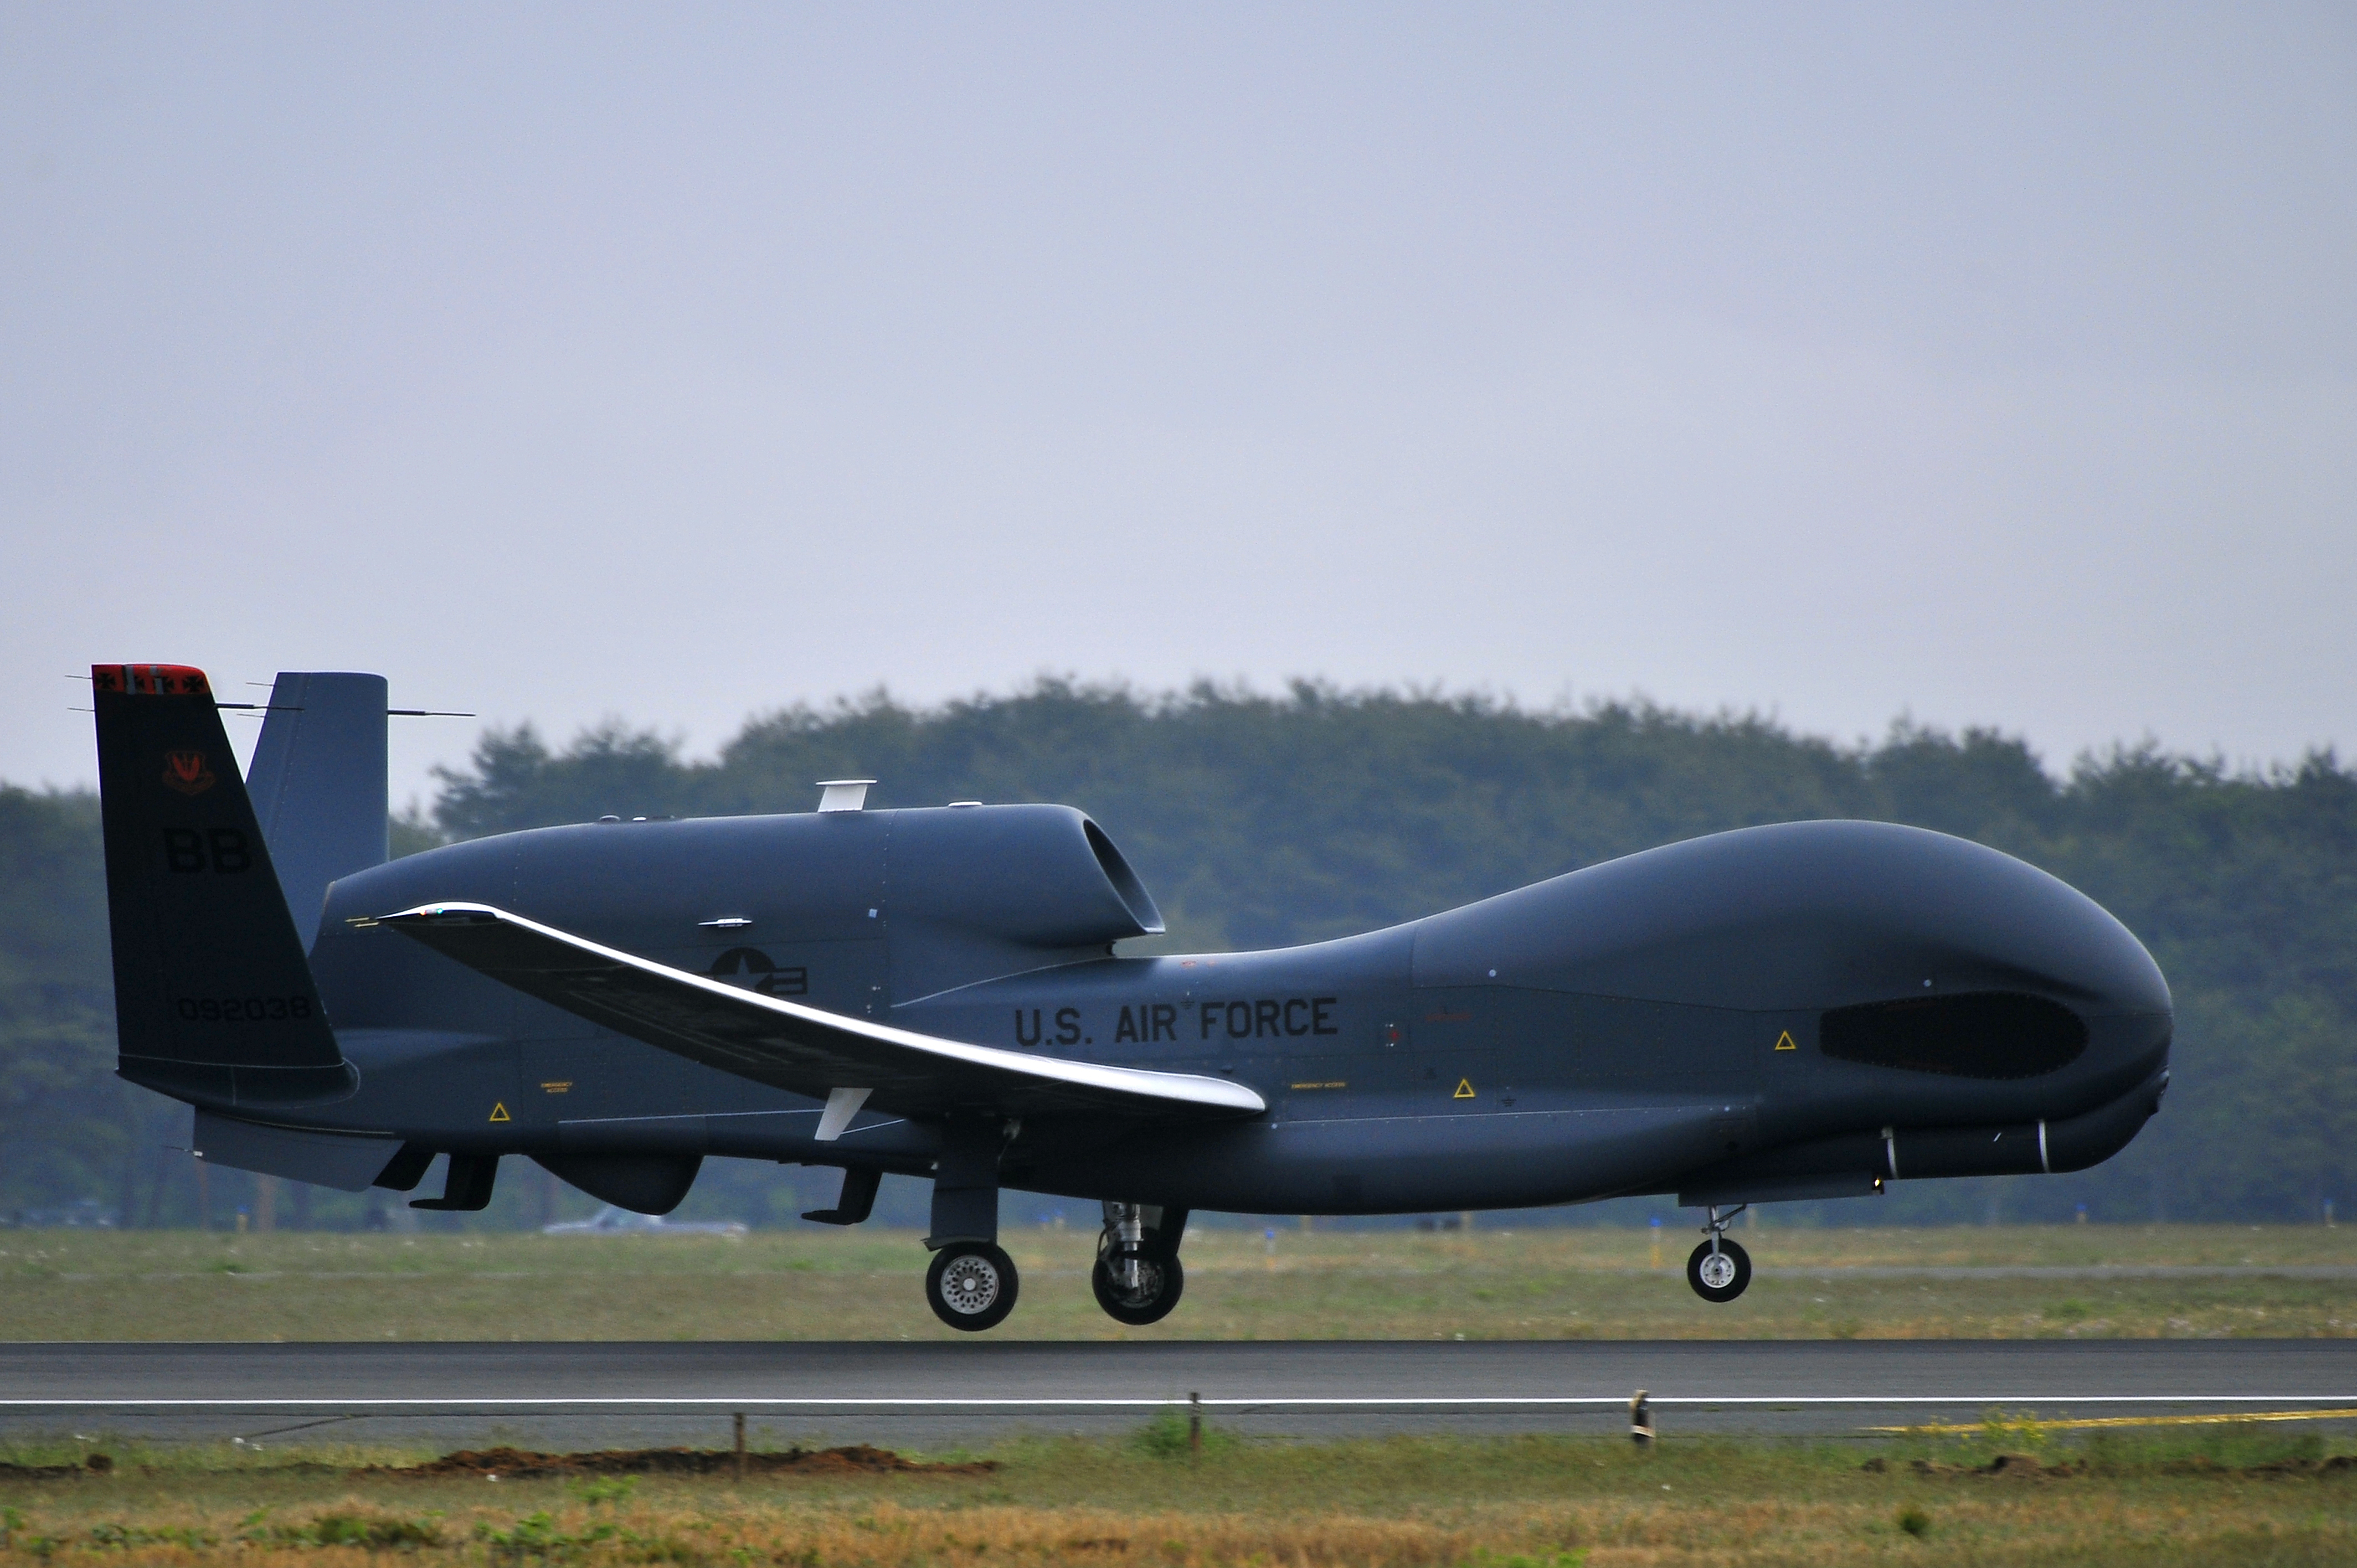 Could long-endurance UAVs be repurposed for surveillance of Russia and China?